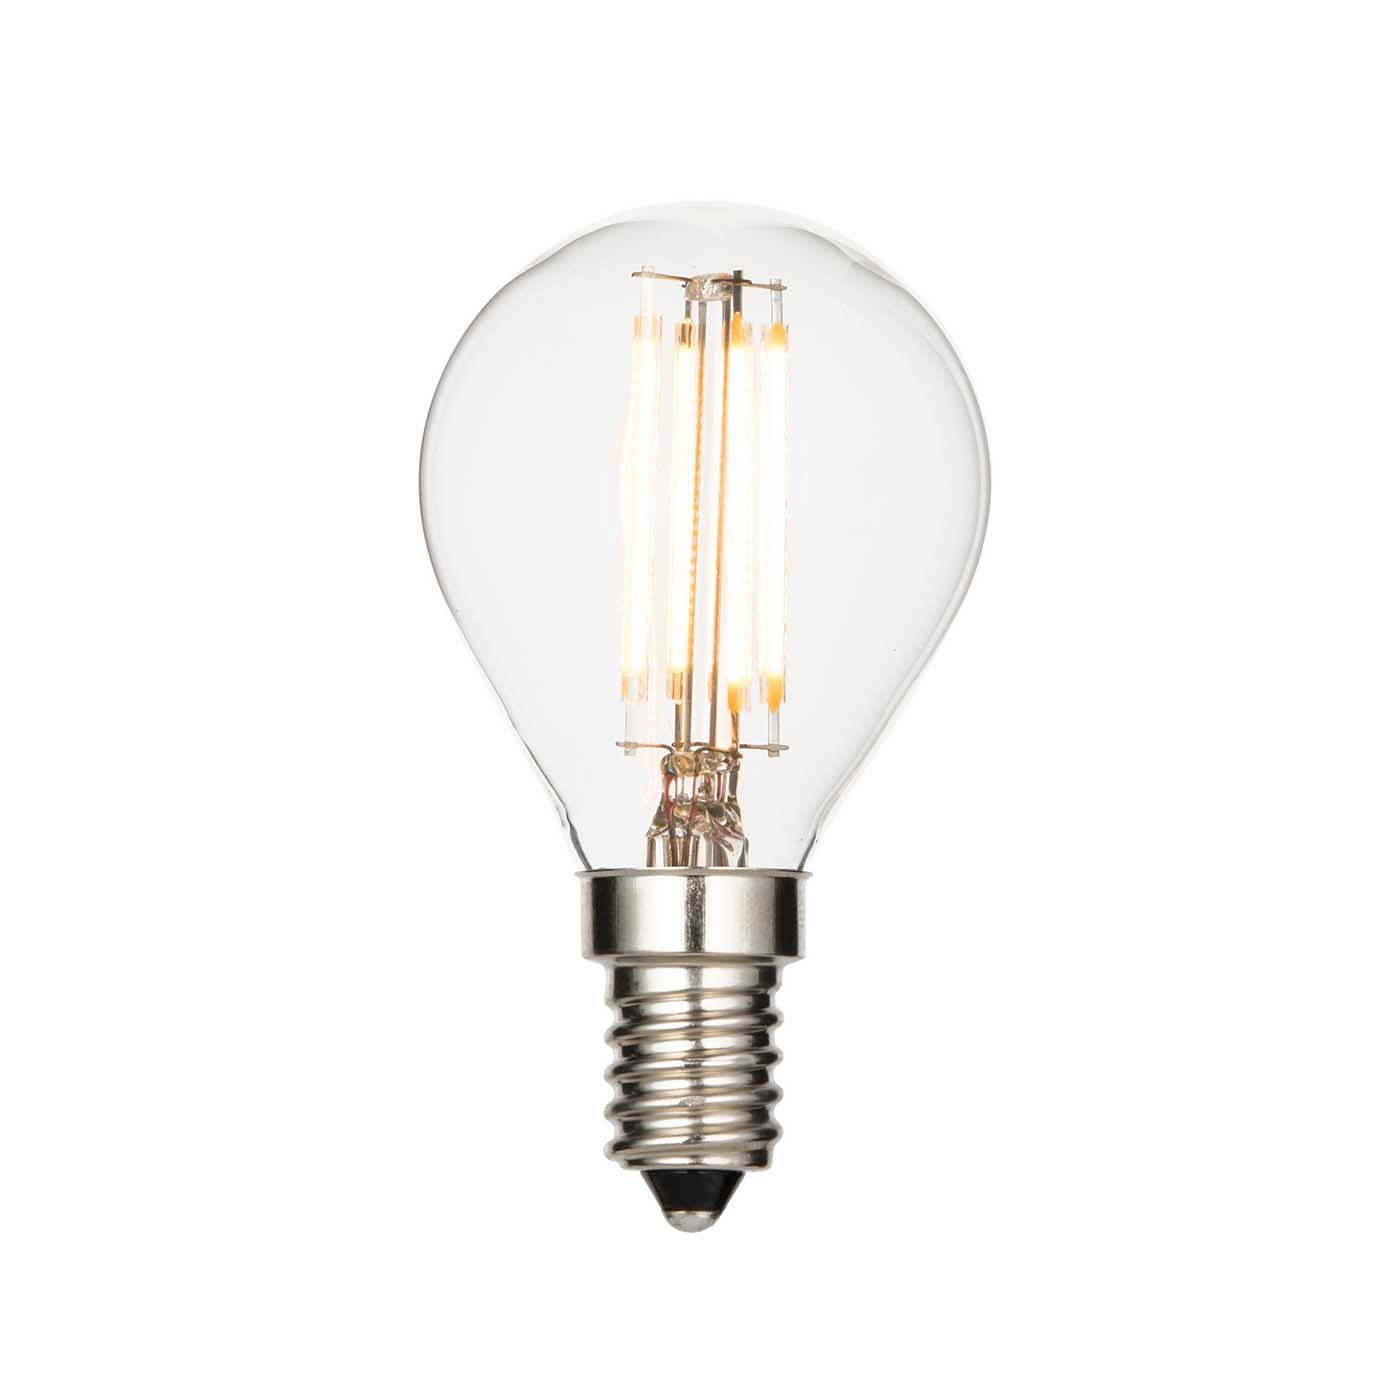 saxby e14 led light bulb filament golf 4w warm white 2700k liminaires. Black Bedroom Furniture Sets. Home Design Ideas